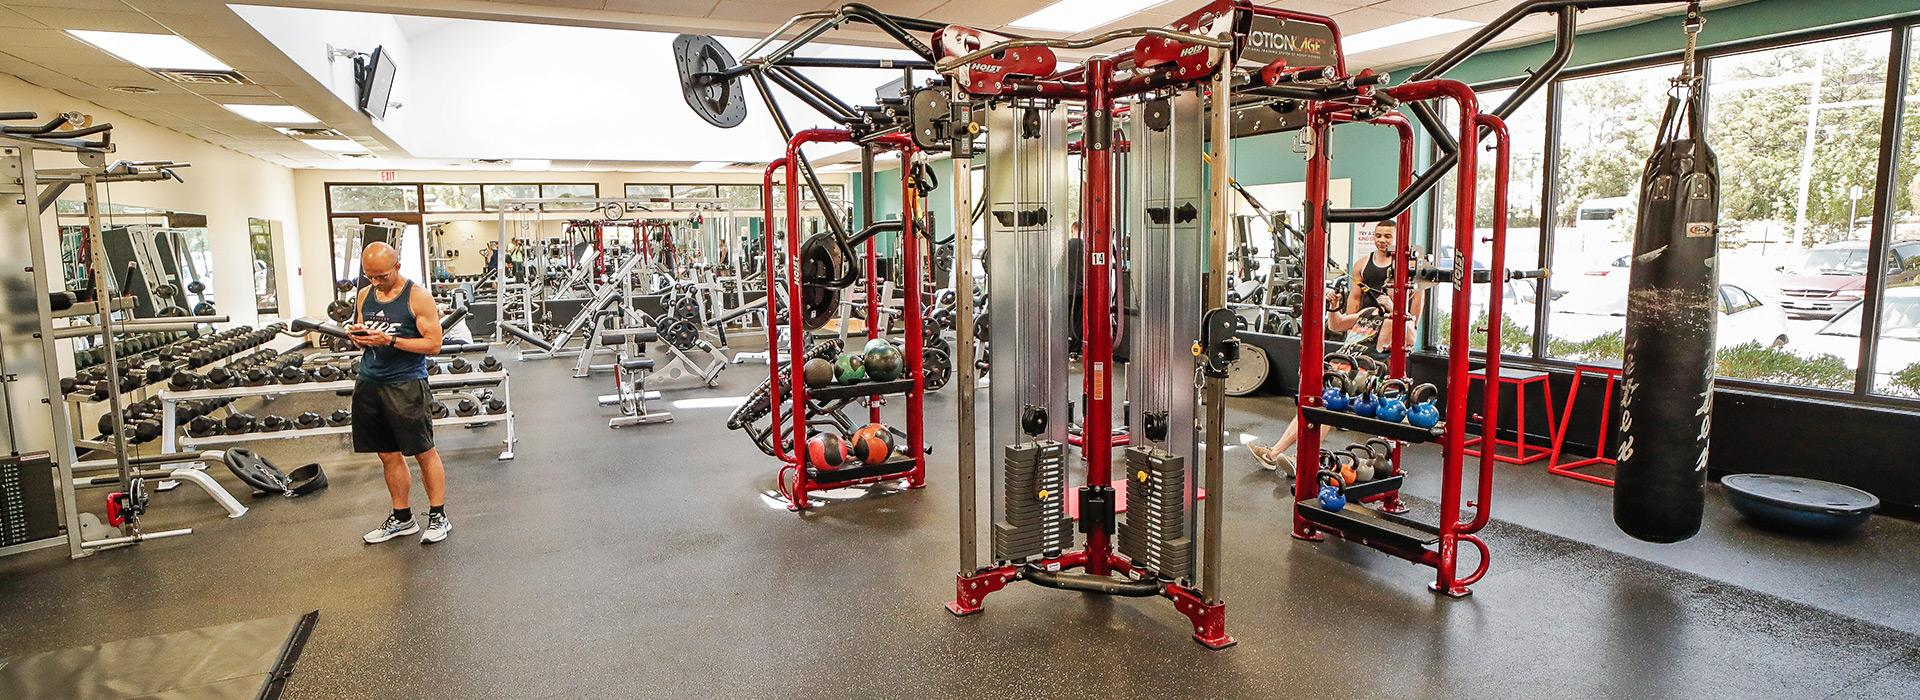 Free weight center at the Mt. Trashmore Family YMCA, including MotionCage, weight benches and racks